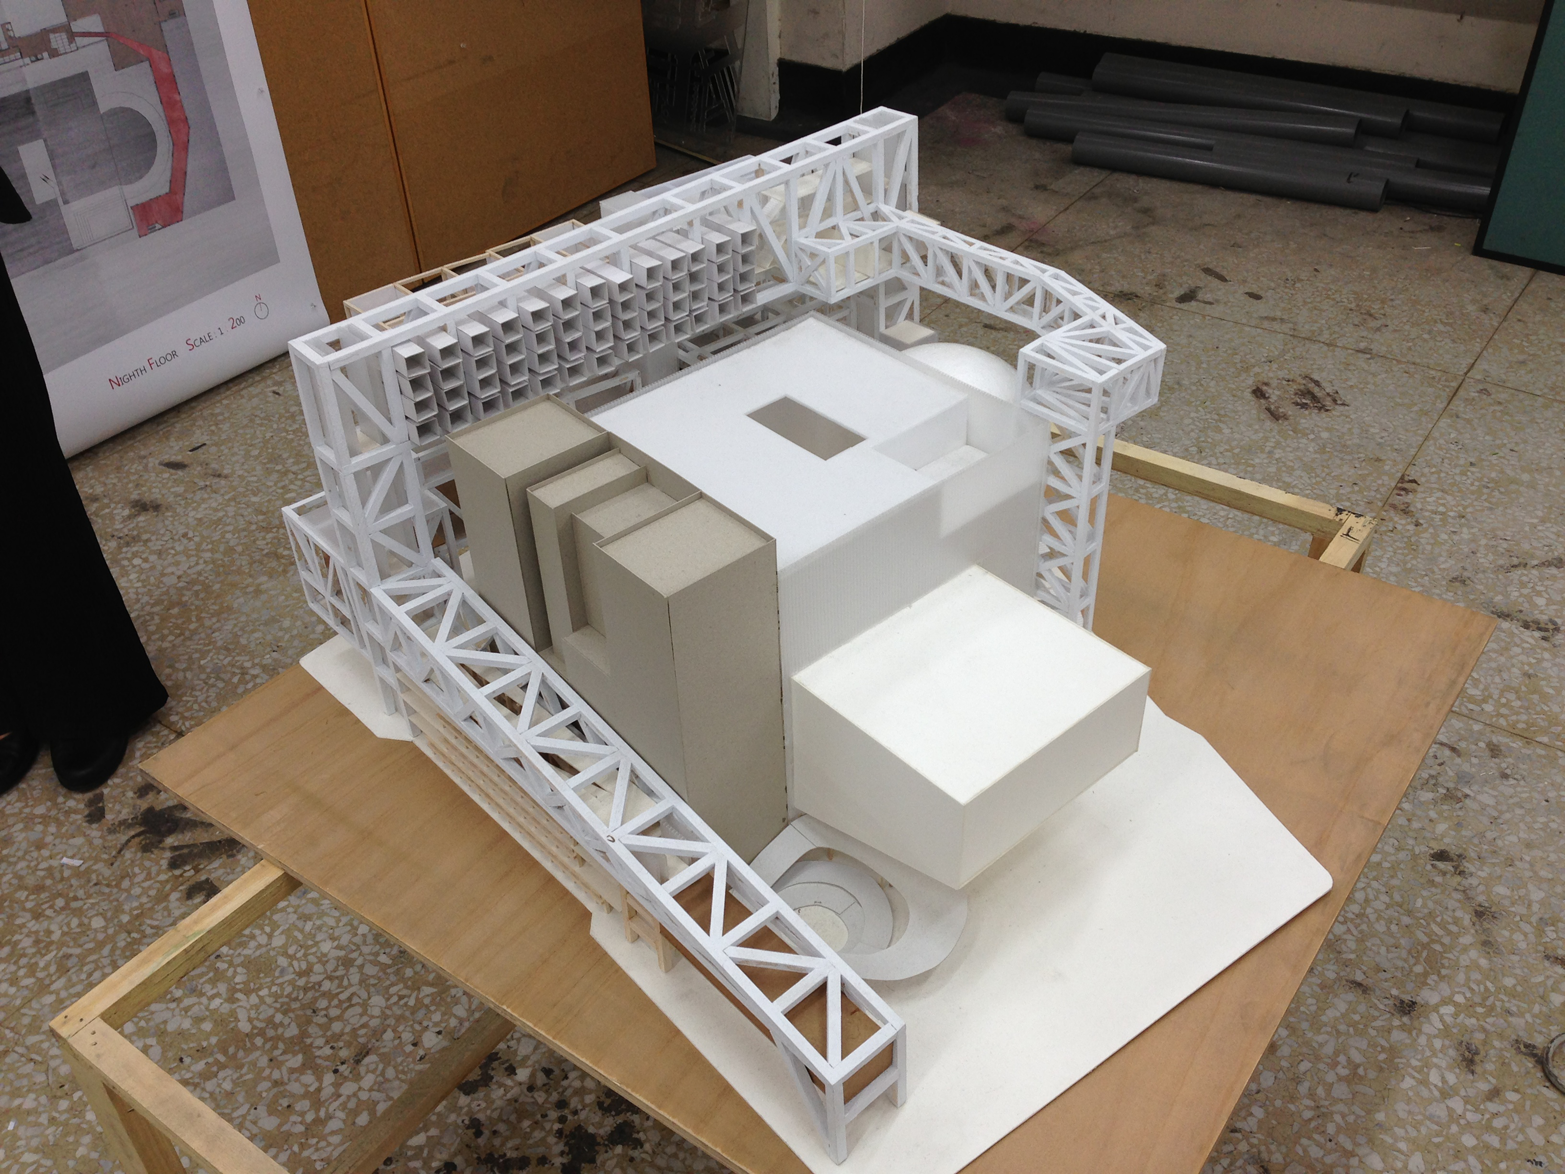 More complicated models allow architects to test air flow and daylight for their chosen form.